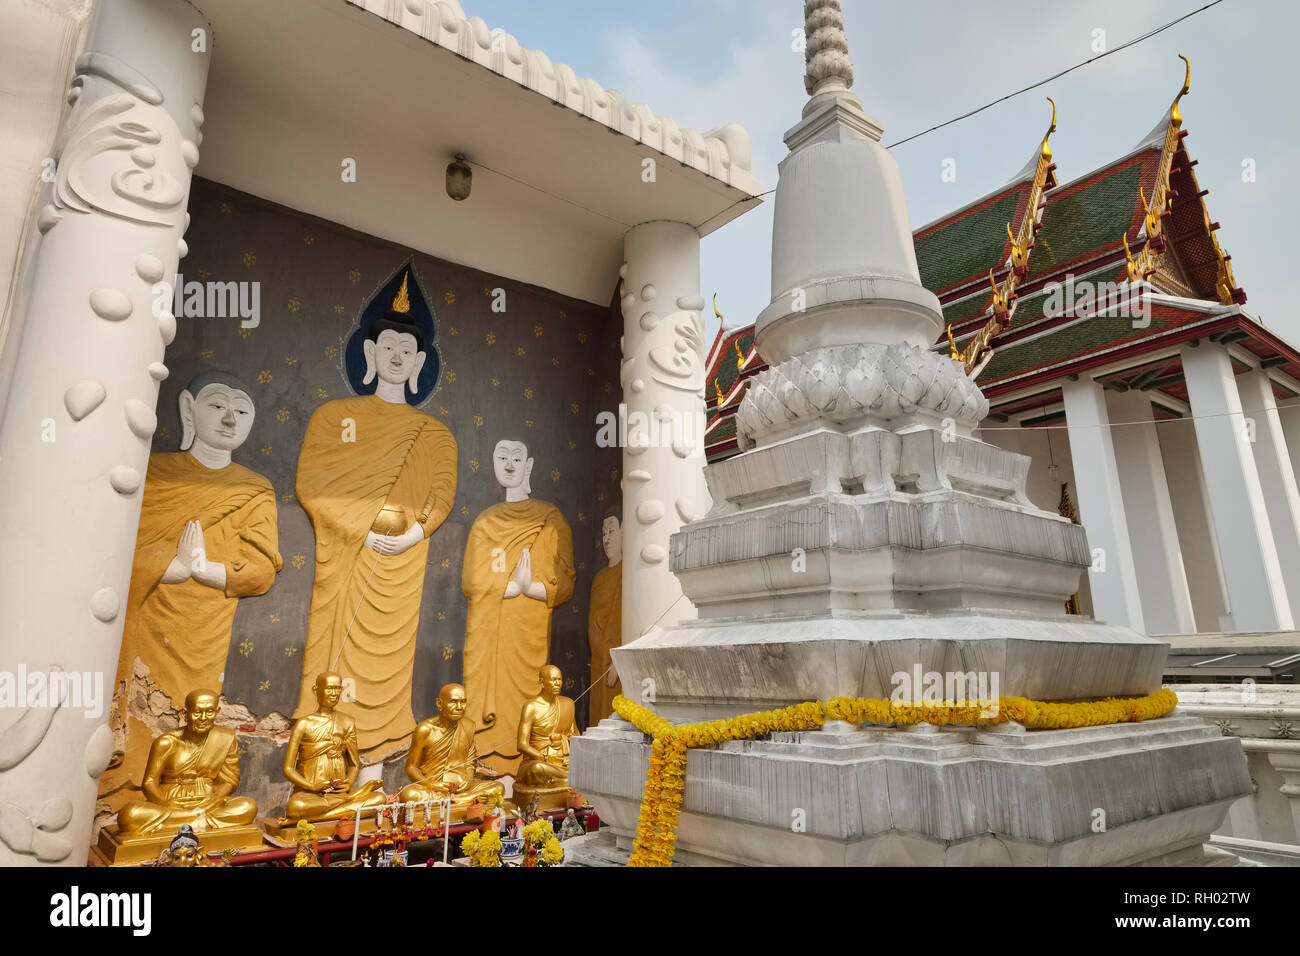 A wall painting of Buddha and his disciples, next to a white chedi or stupa, Wat Ratchanadta, Bangkok, Thailand - Stock Image